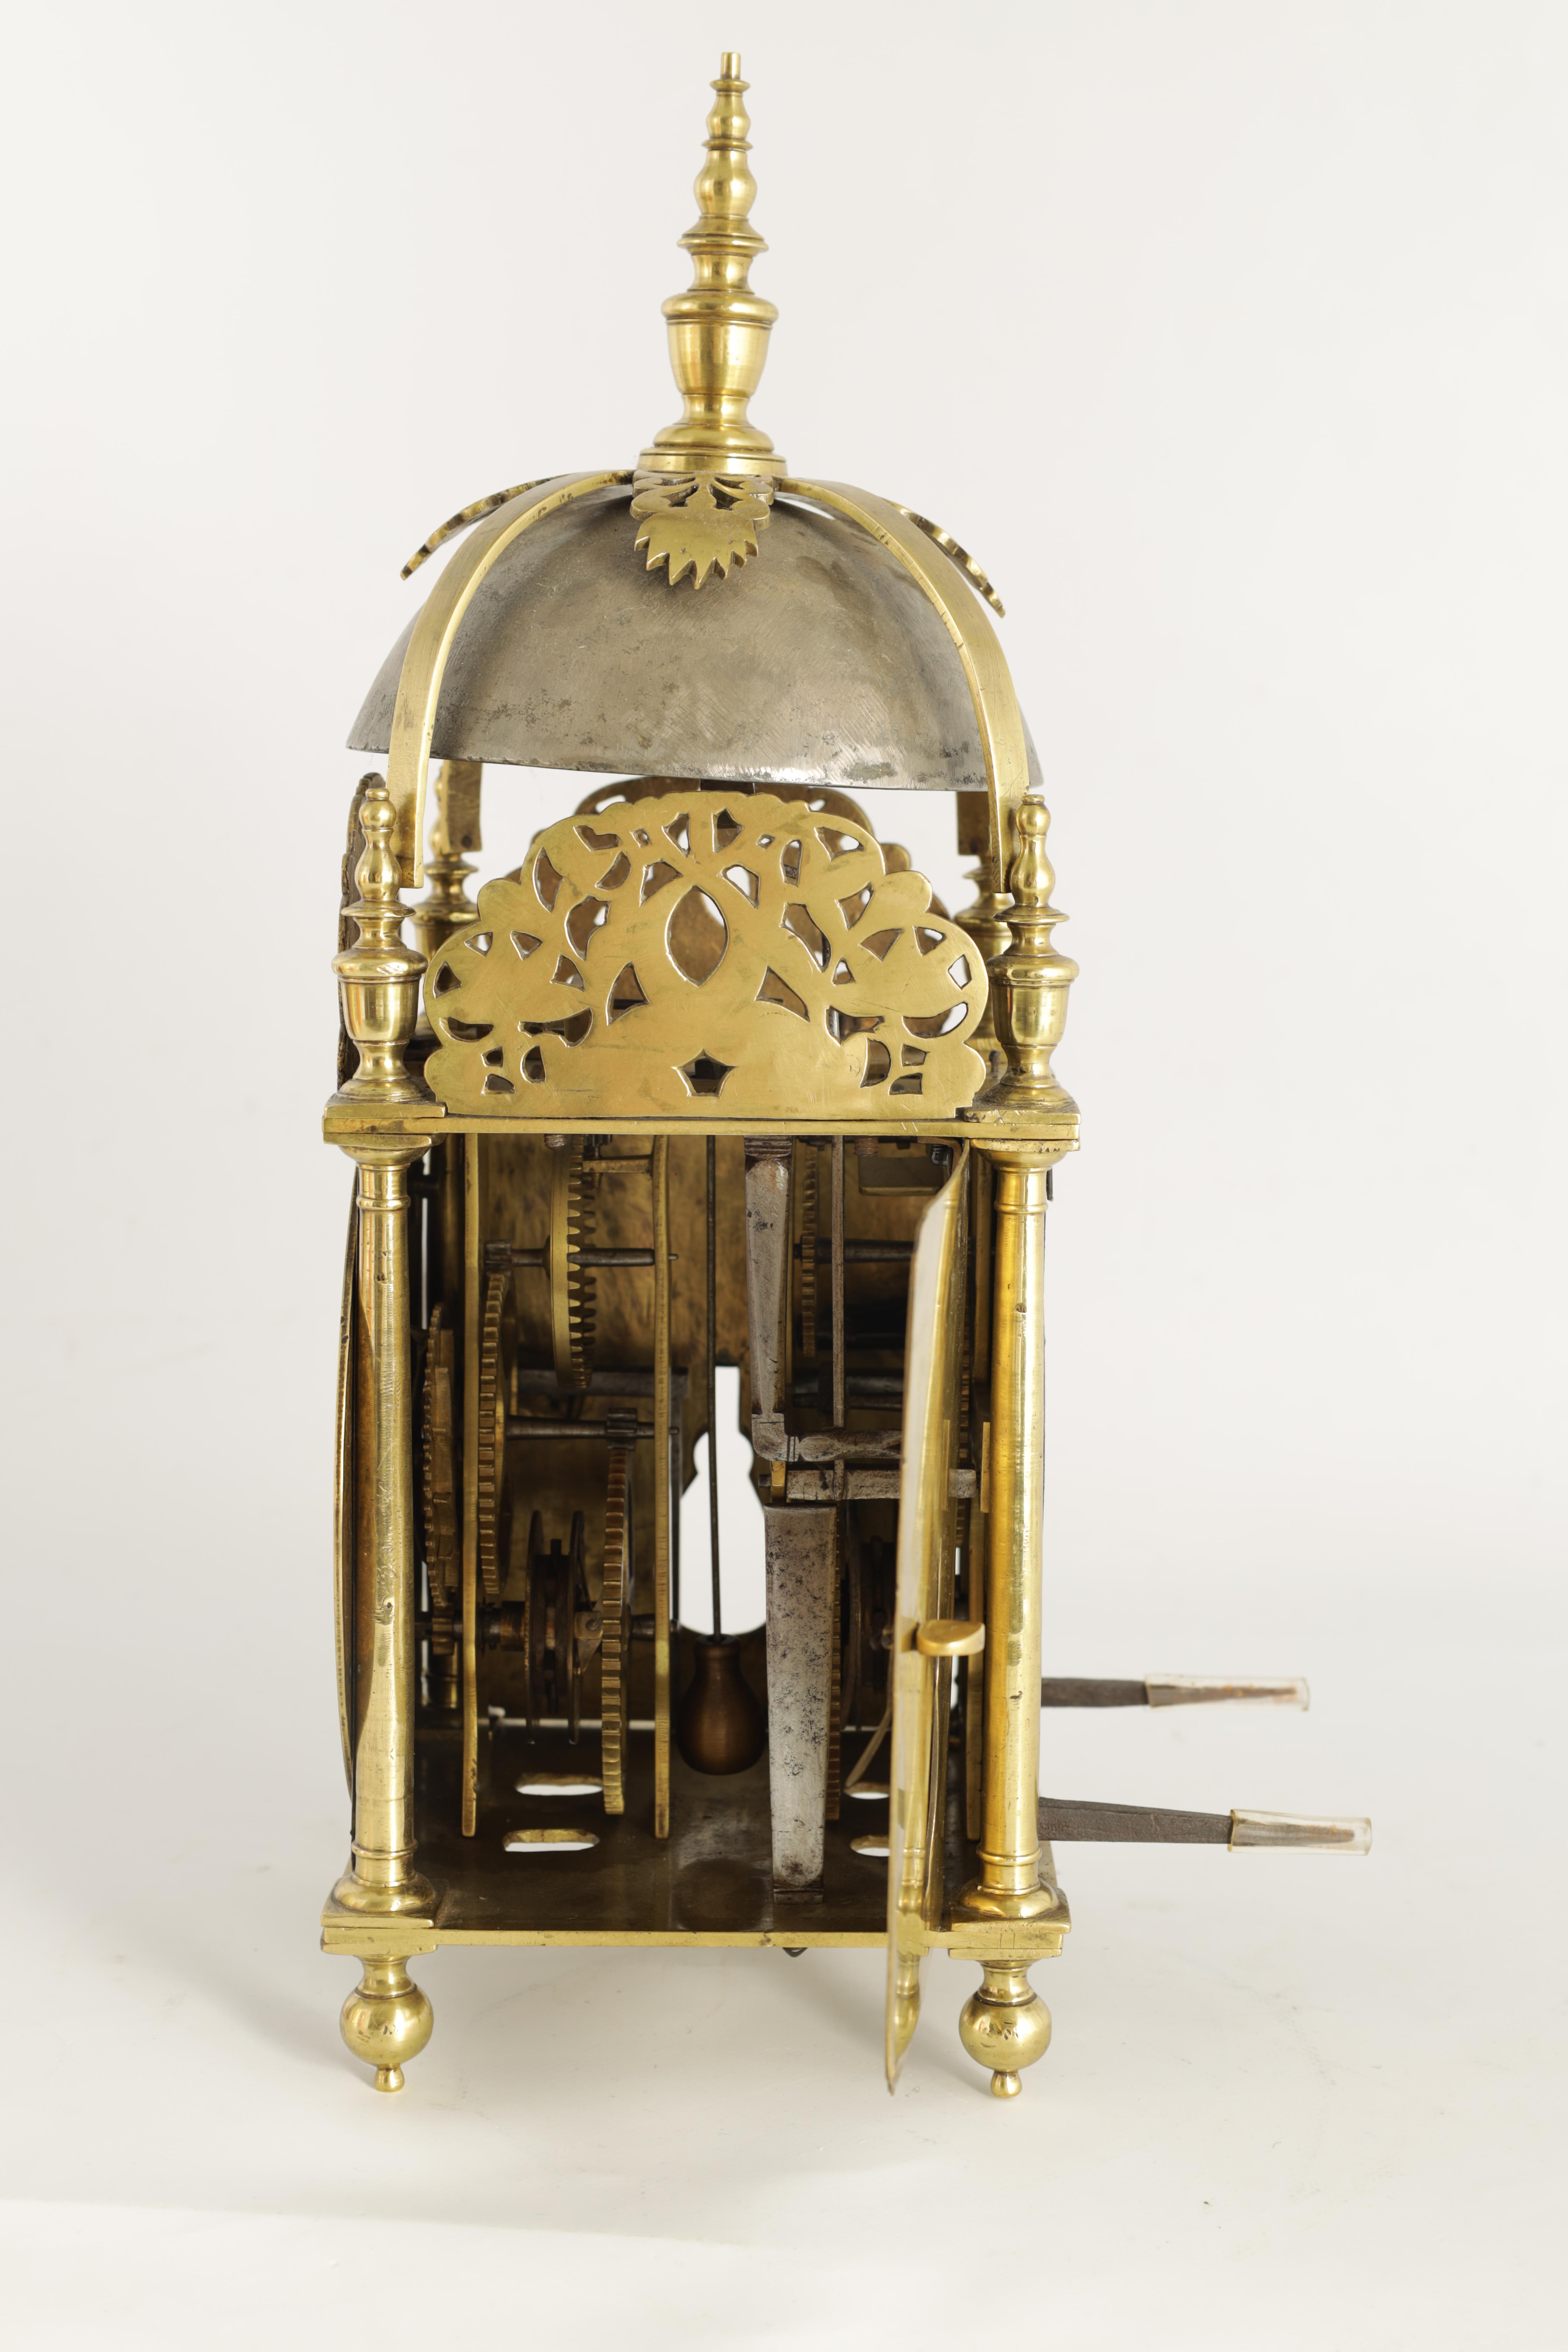 A FINE CHARLES II BRASS LANTERN CLOCKthe posted frame with side doors, engraved fretwork - Image 7 of 9